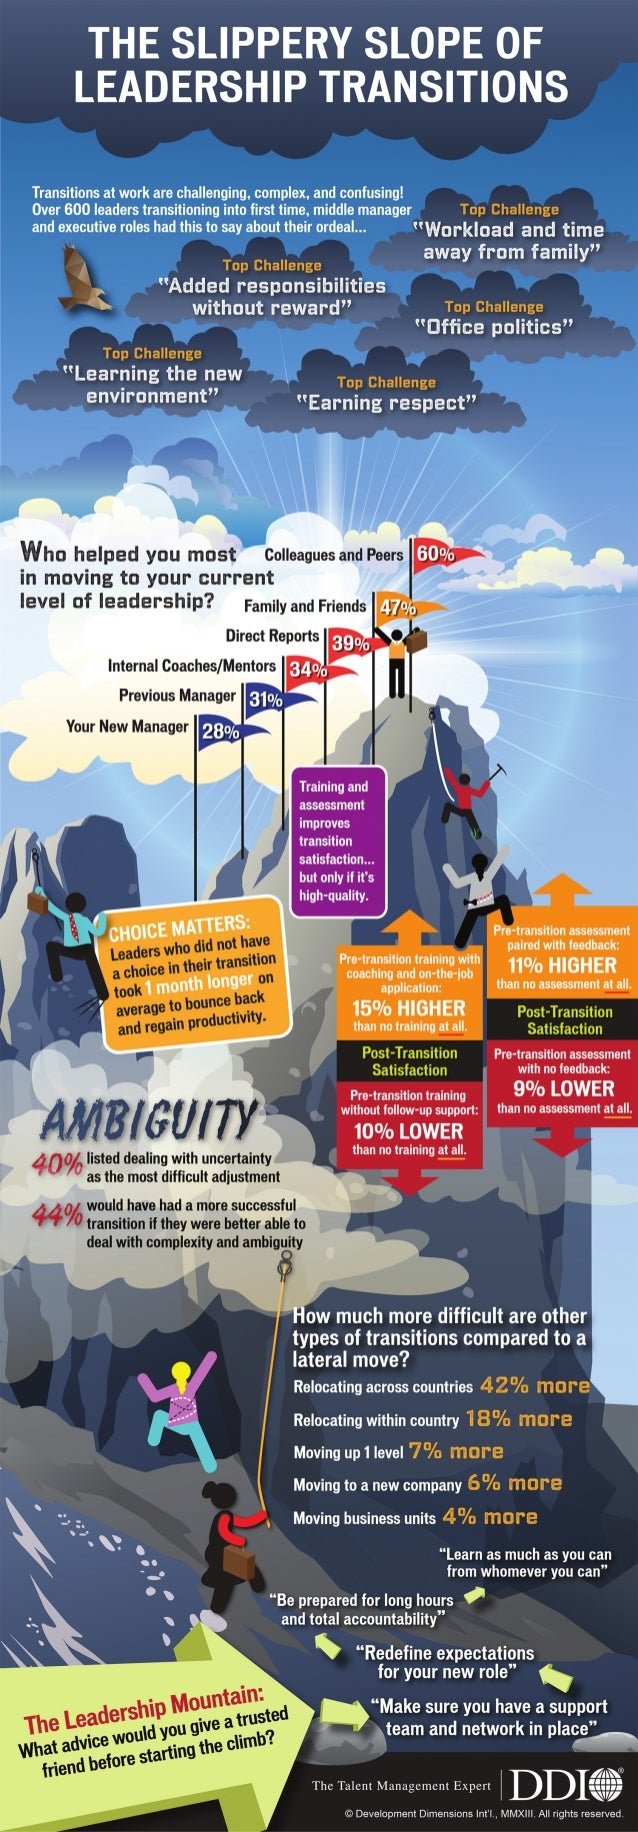 The Slippery Slope of Leadership Transitions